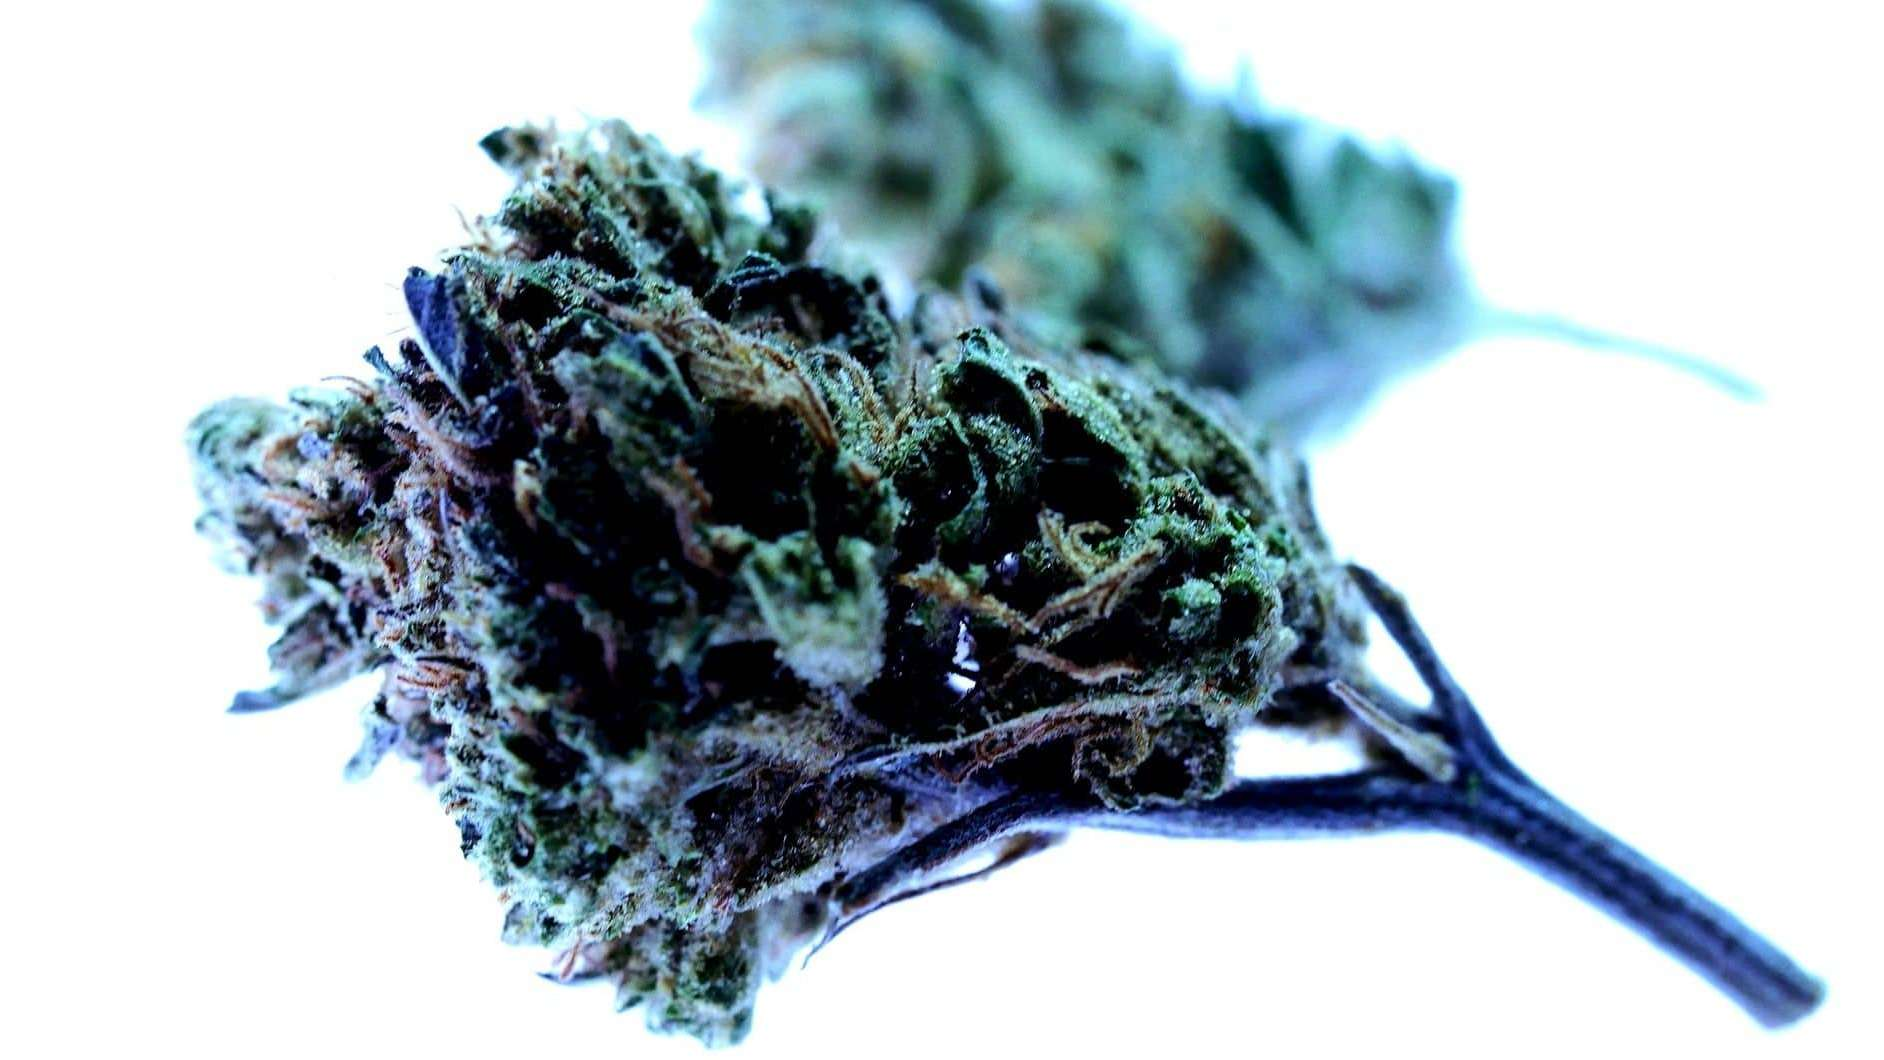 Weed Strains - Featured Image